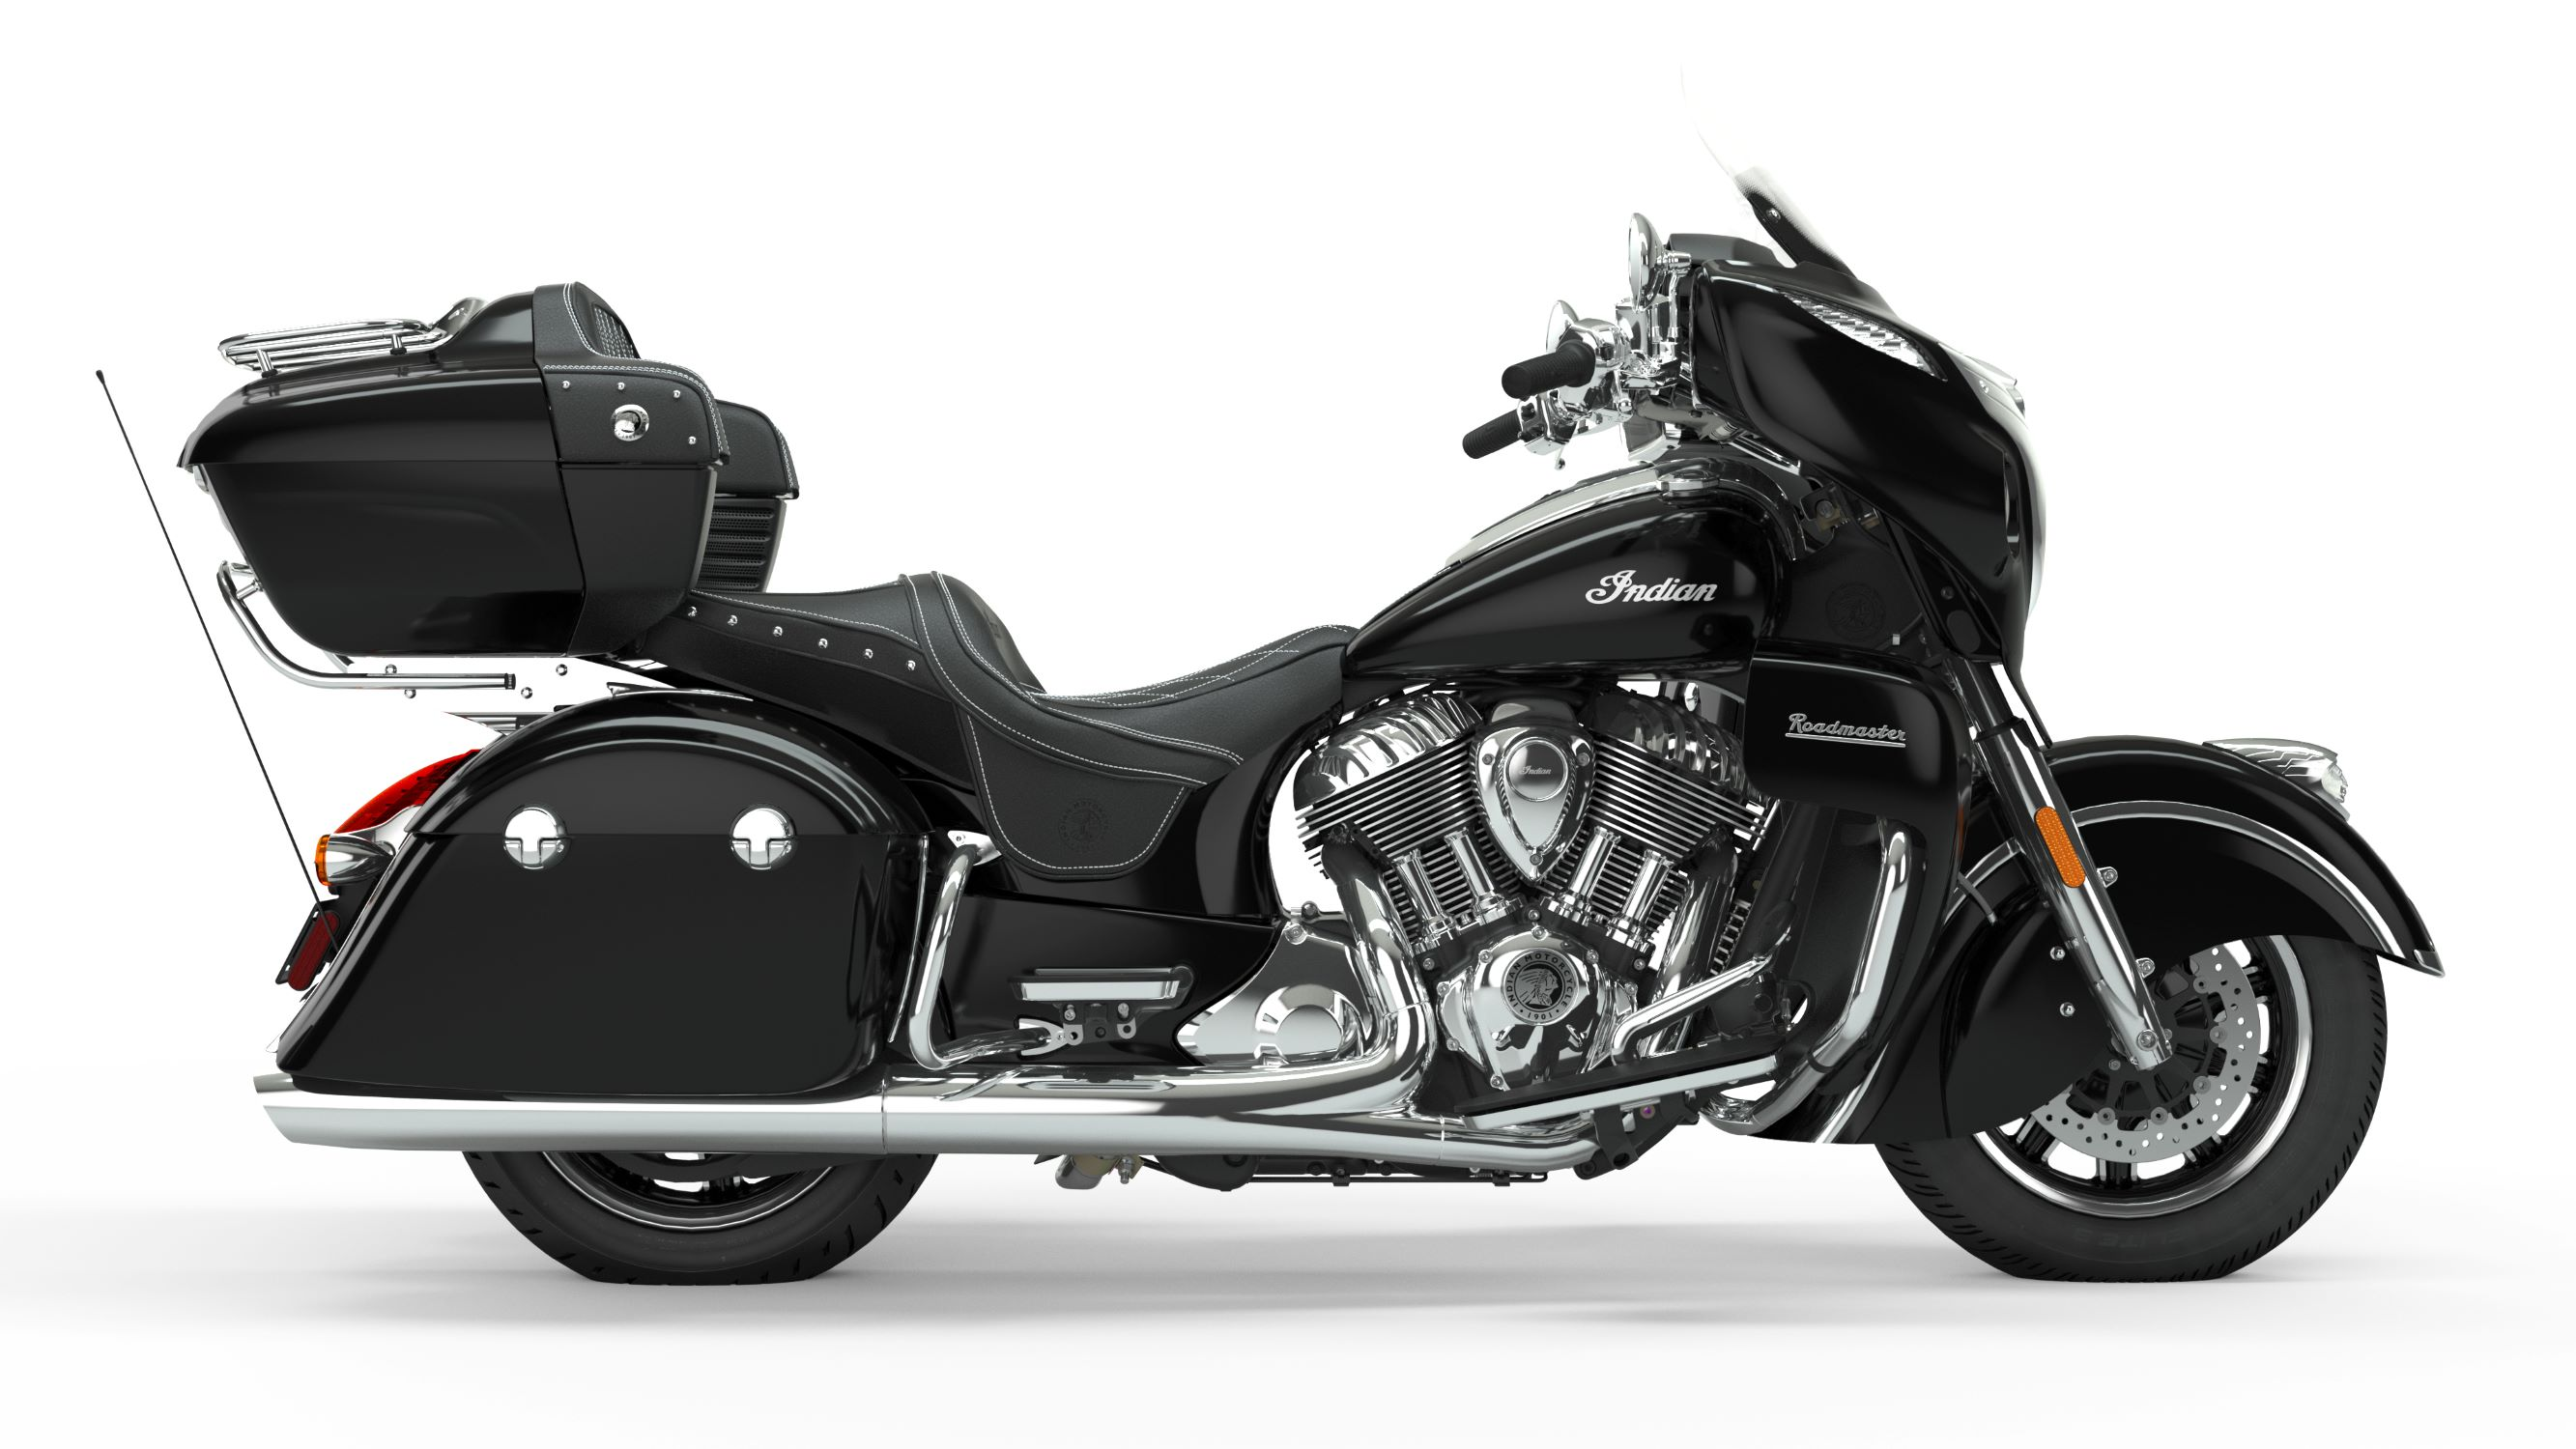 2019 Roadmaster Thunder Black Right